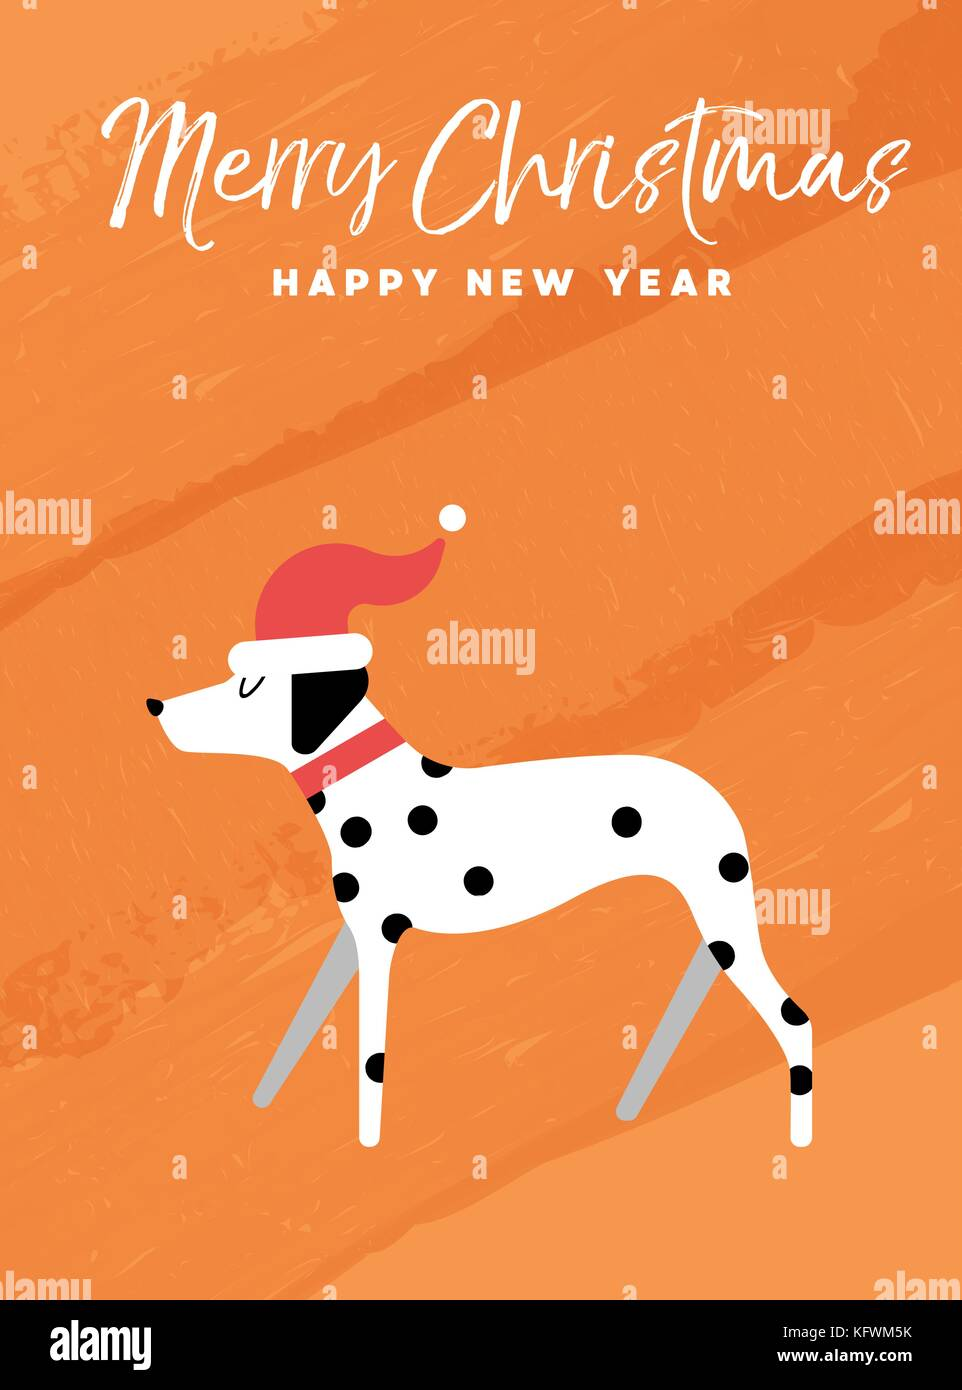 Merry Christmas And Happy New Year Holiday Greeting Card Stock